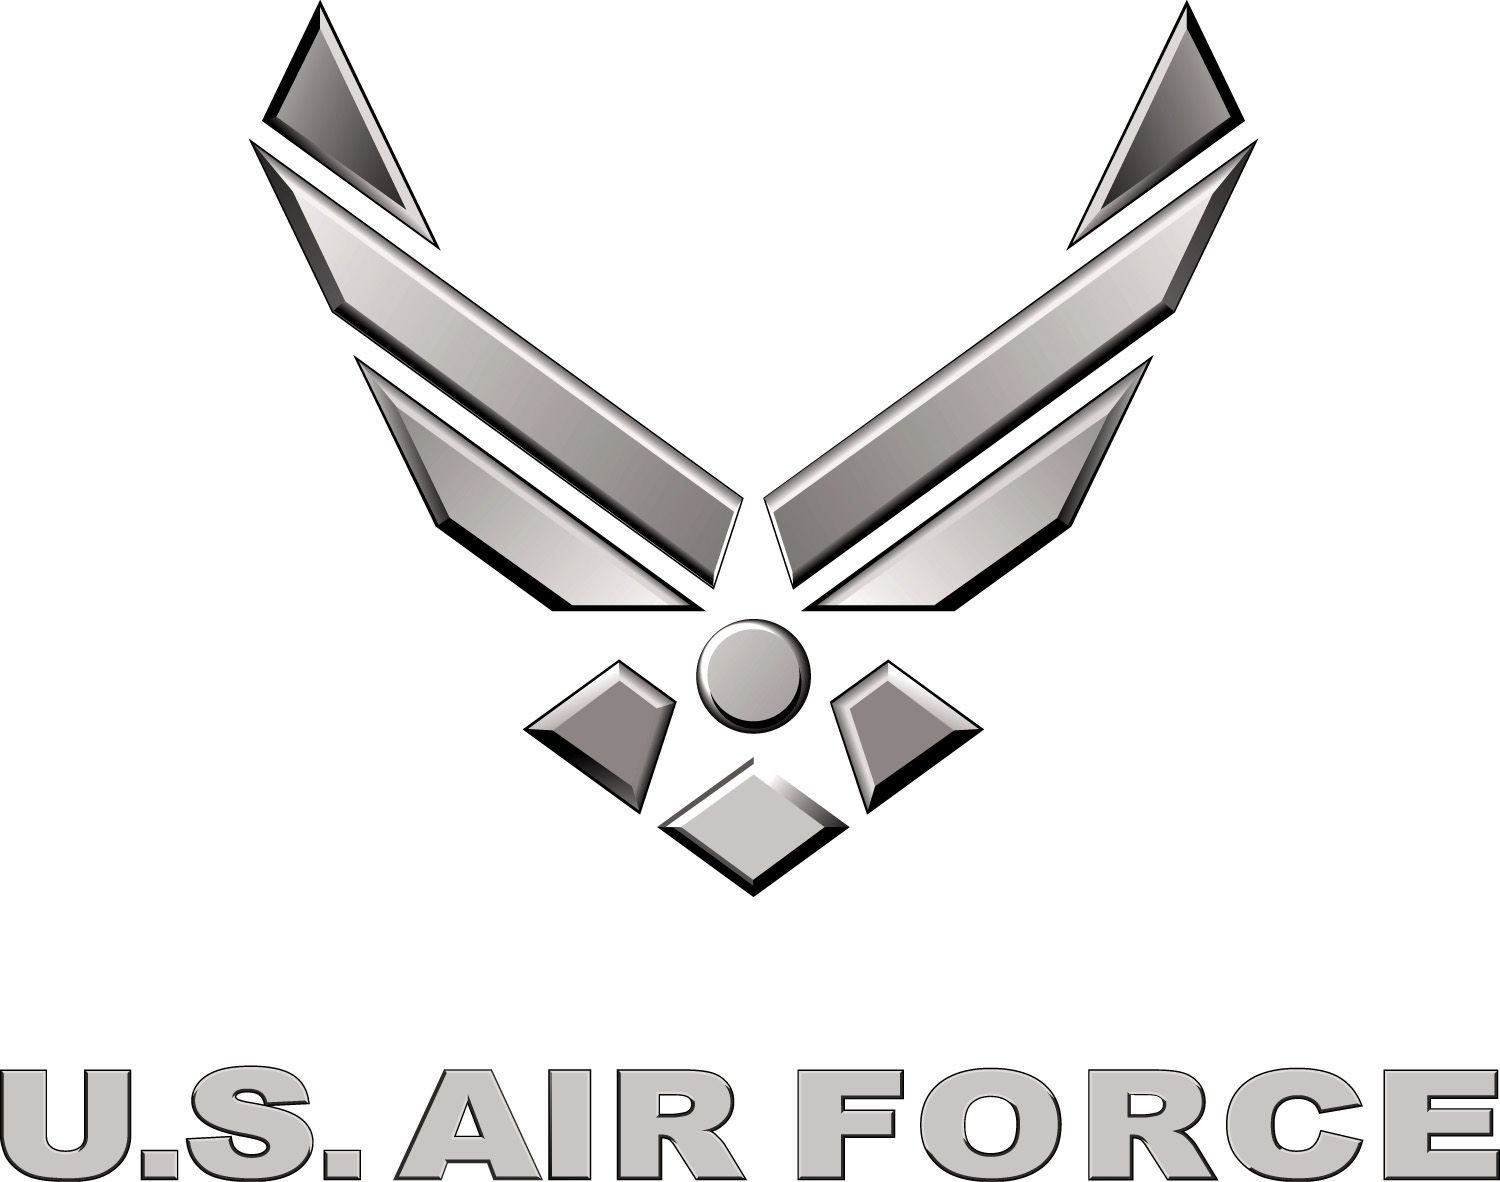 Fileus air force logo silverg wikimedia commons fileus air force logo silverg voltagebd Images